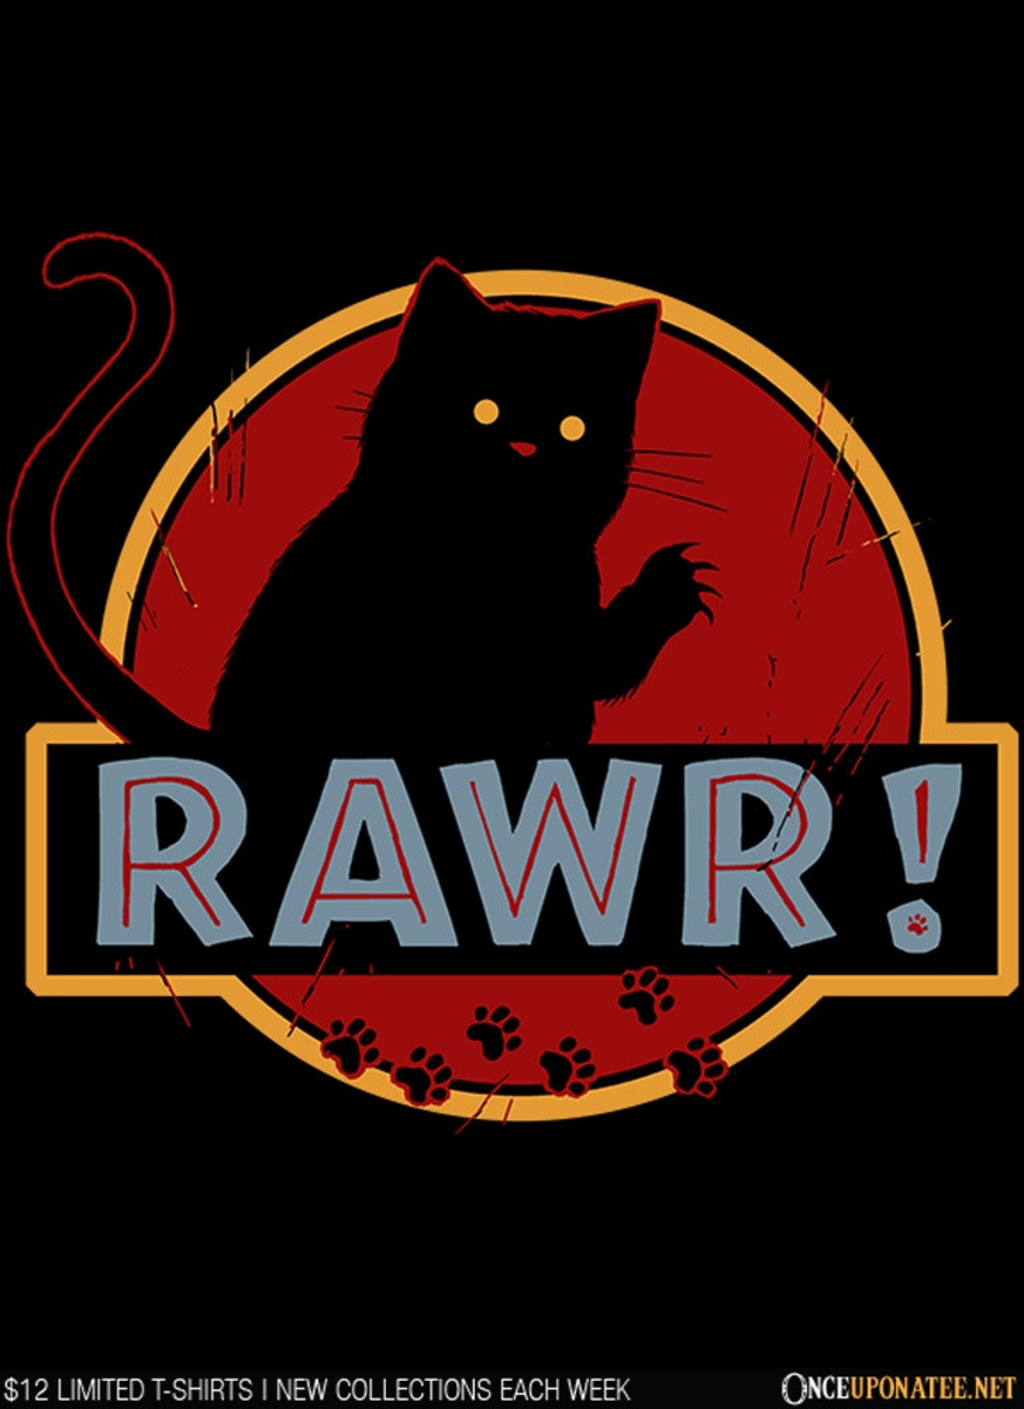 Once Upon a Tee: Rawr